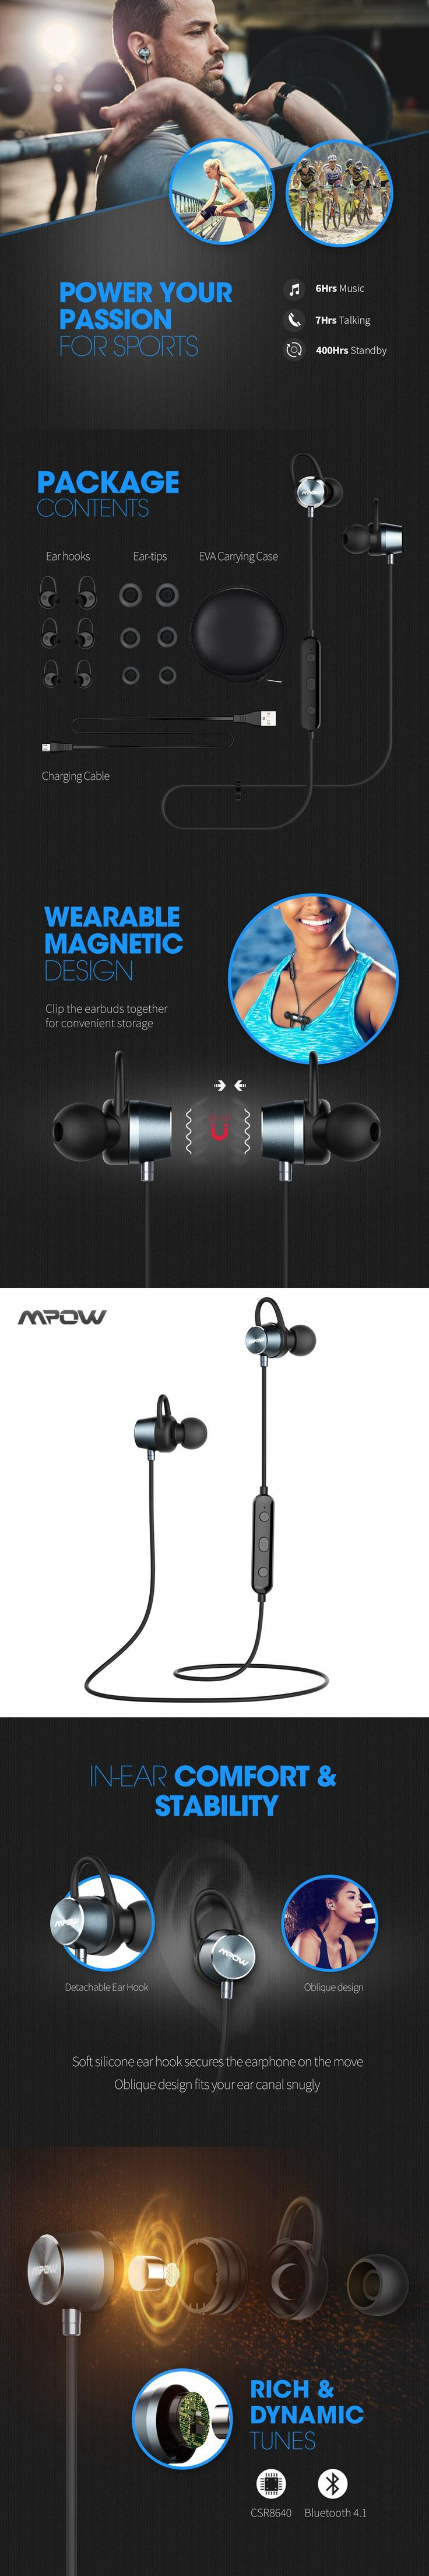 MPOW Jungle Magnetic Bluetooth V4.1 Headphones Wireless Earphone Stereo Music Outdoor Sport Earbuds w/ Mic for iPhone Samsung